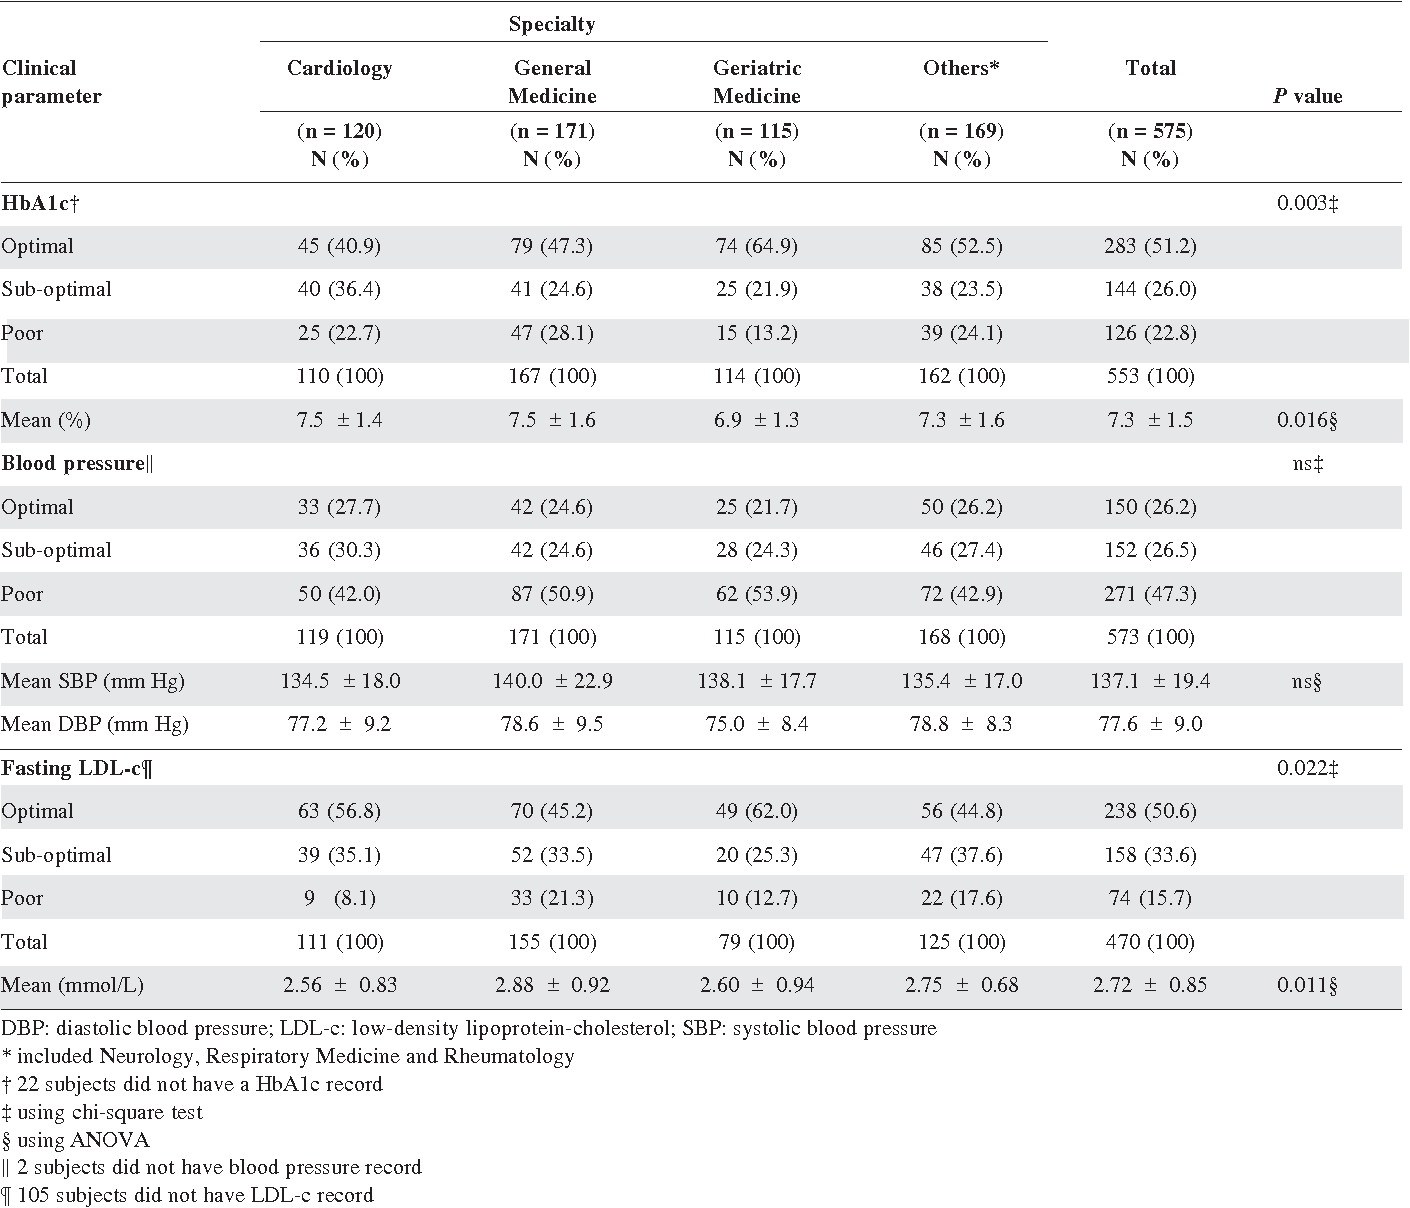 Table 3. Glycaemic, Blood Pressure and Cholesterol Control by Specialty